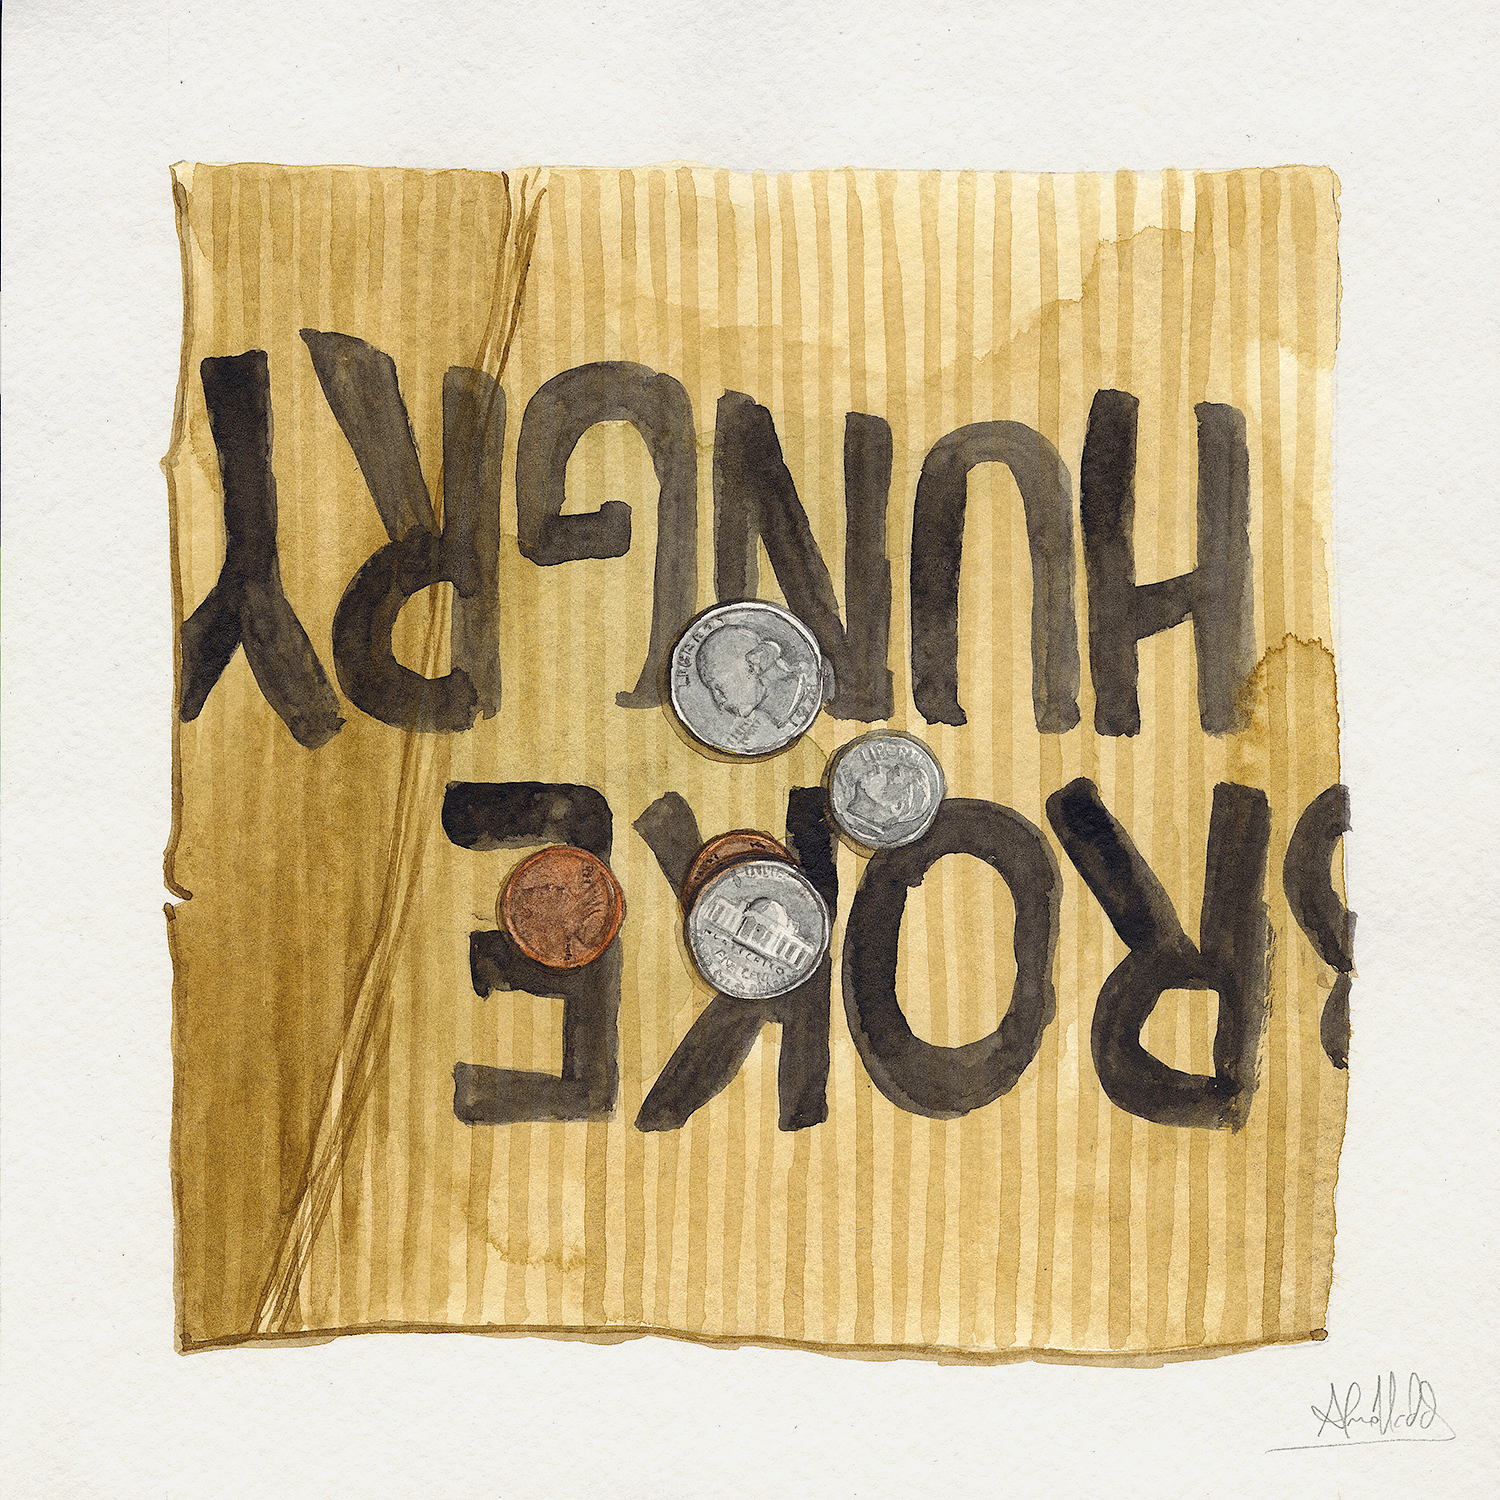 Alvaro Naddeo, Forty Two Cents, 2015. Watercolor on paper, 9 x 9 in.